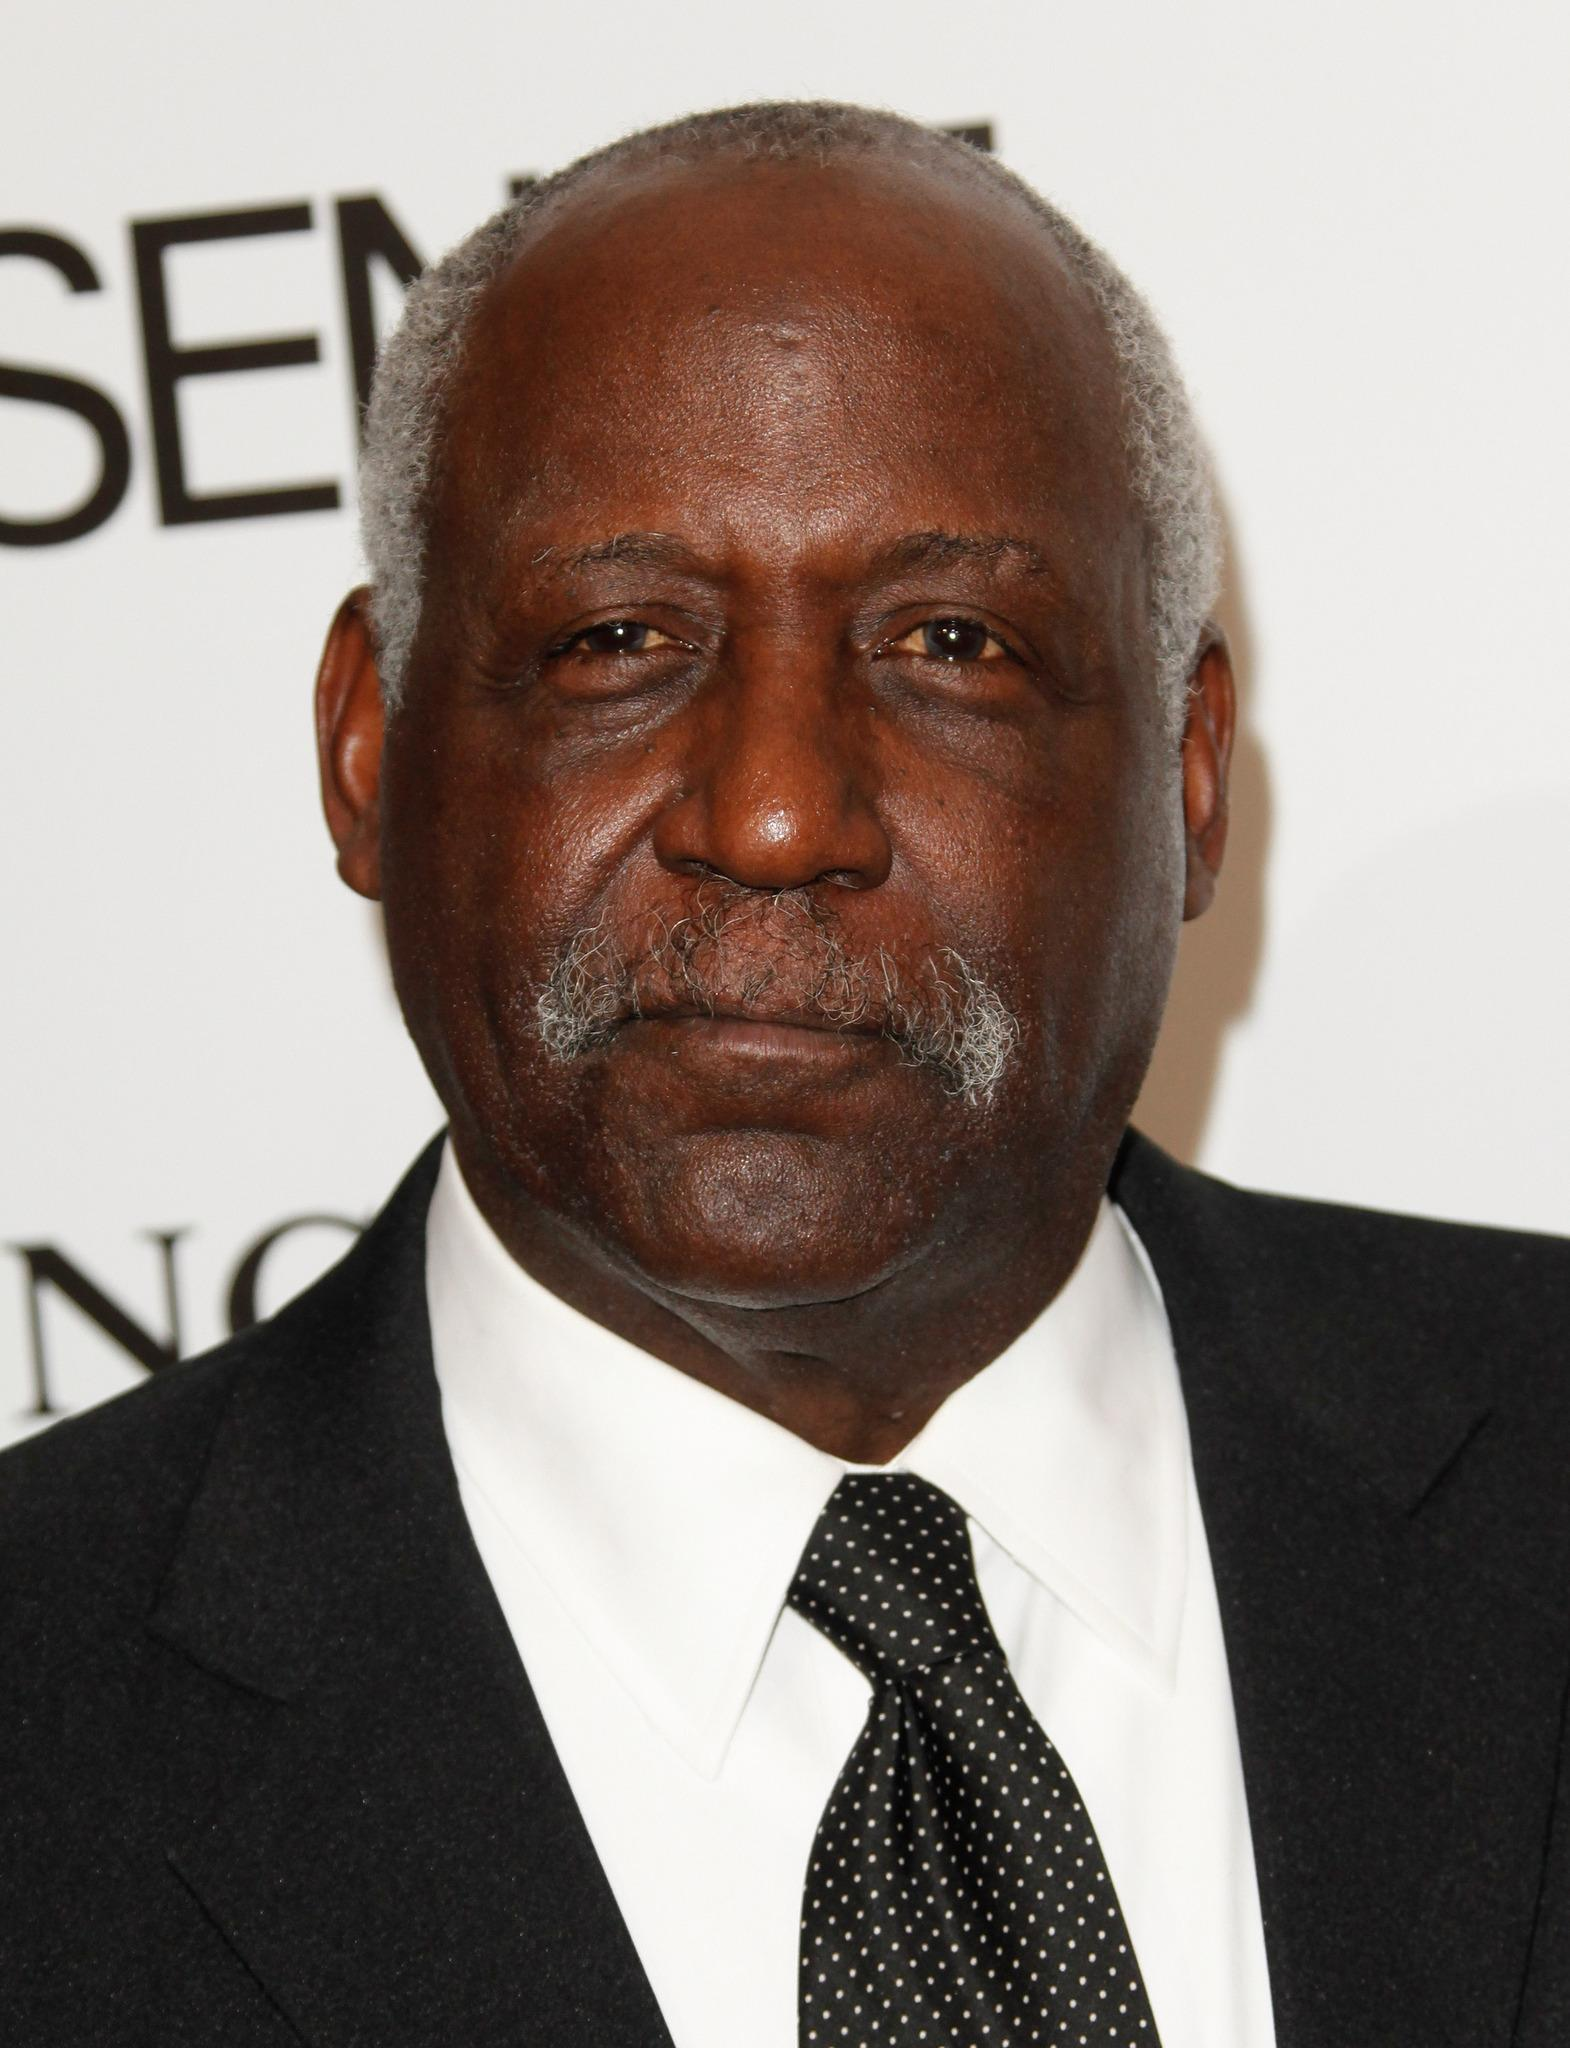 richard roundtree biographyrichard roundtree height, richard roundtree shaft, richard roundtree, richard roundtree wife, richard roundtree net worth, richard roundtree dies, richard roundtree biography, richard roundtree imdb, richard roundtree movies, richard roundtree breast cancer, richard roundtree gay, richard roundtree daughter, richard roundtree sported one, richard roundtree married, richard roundtree wife photos, richard roundtree chicago fire, richard roundtree family, richard roundtree sheriff, richard roundtree dies of cancer